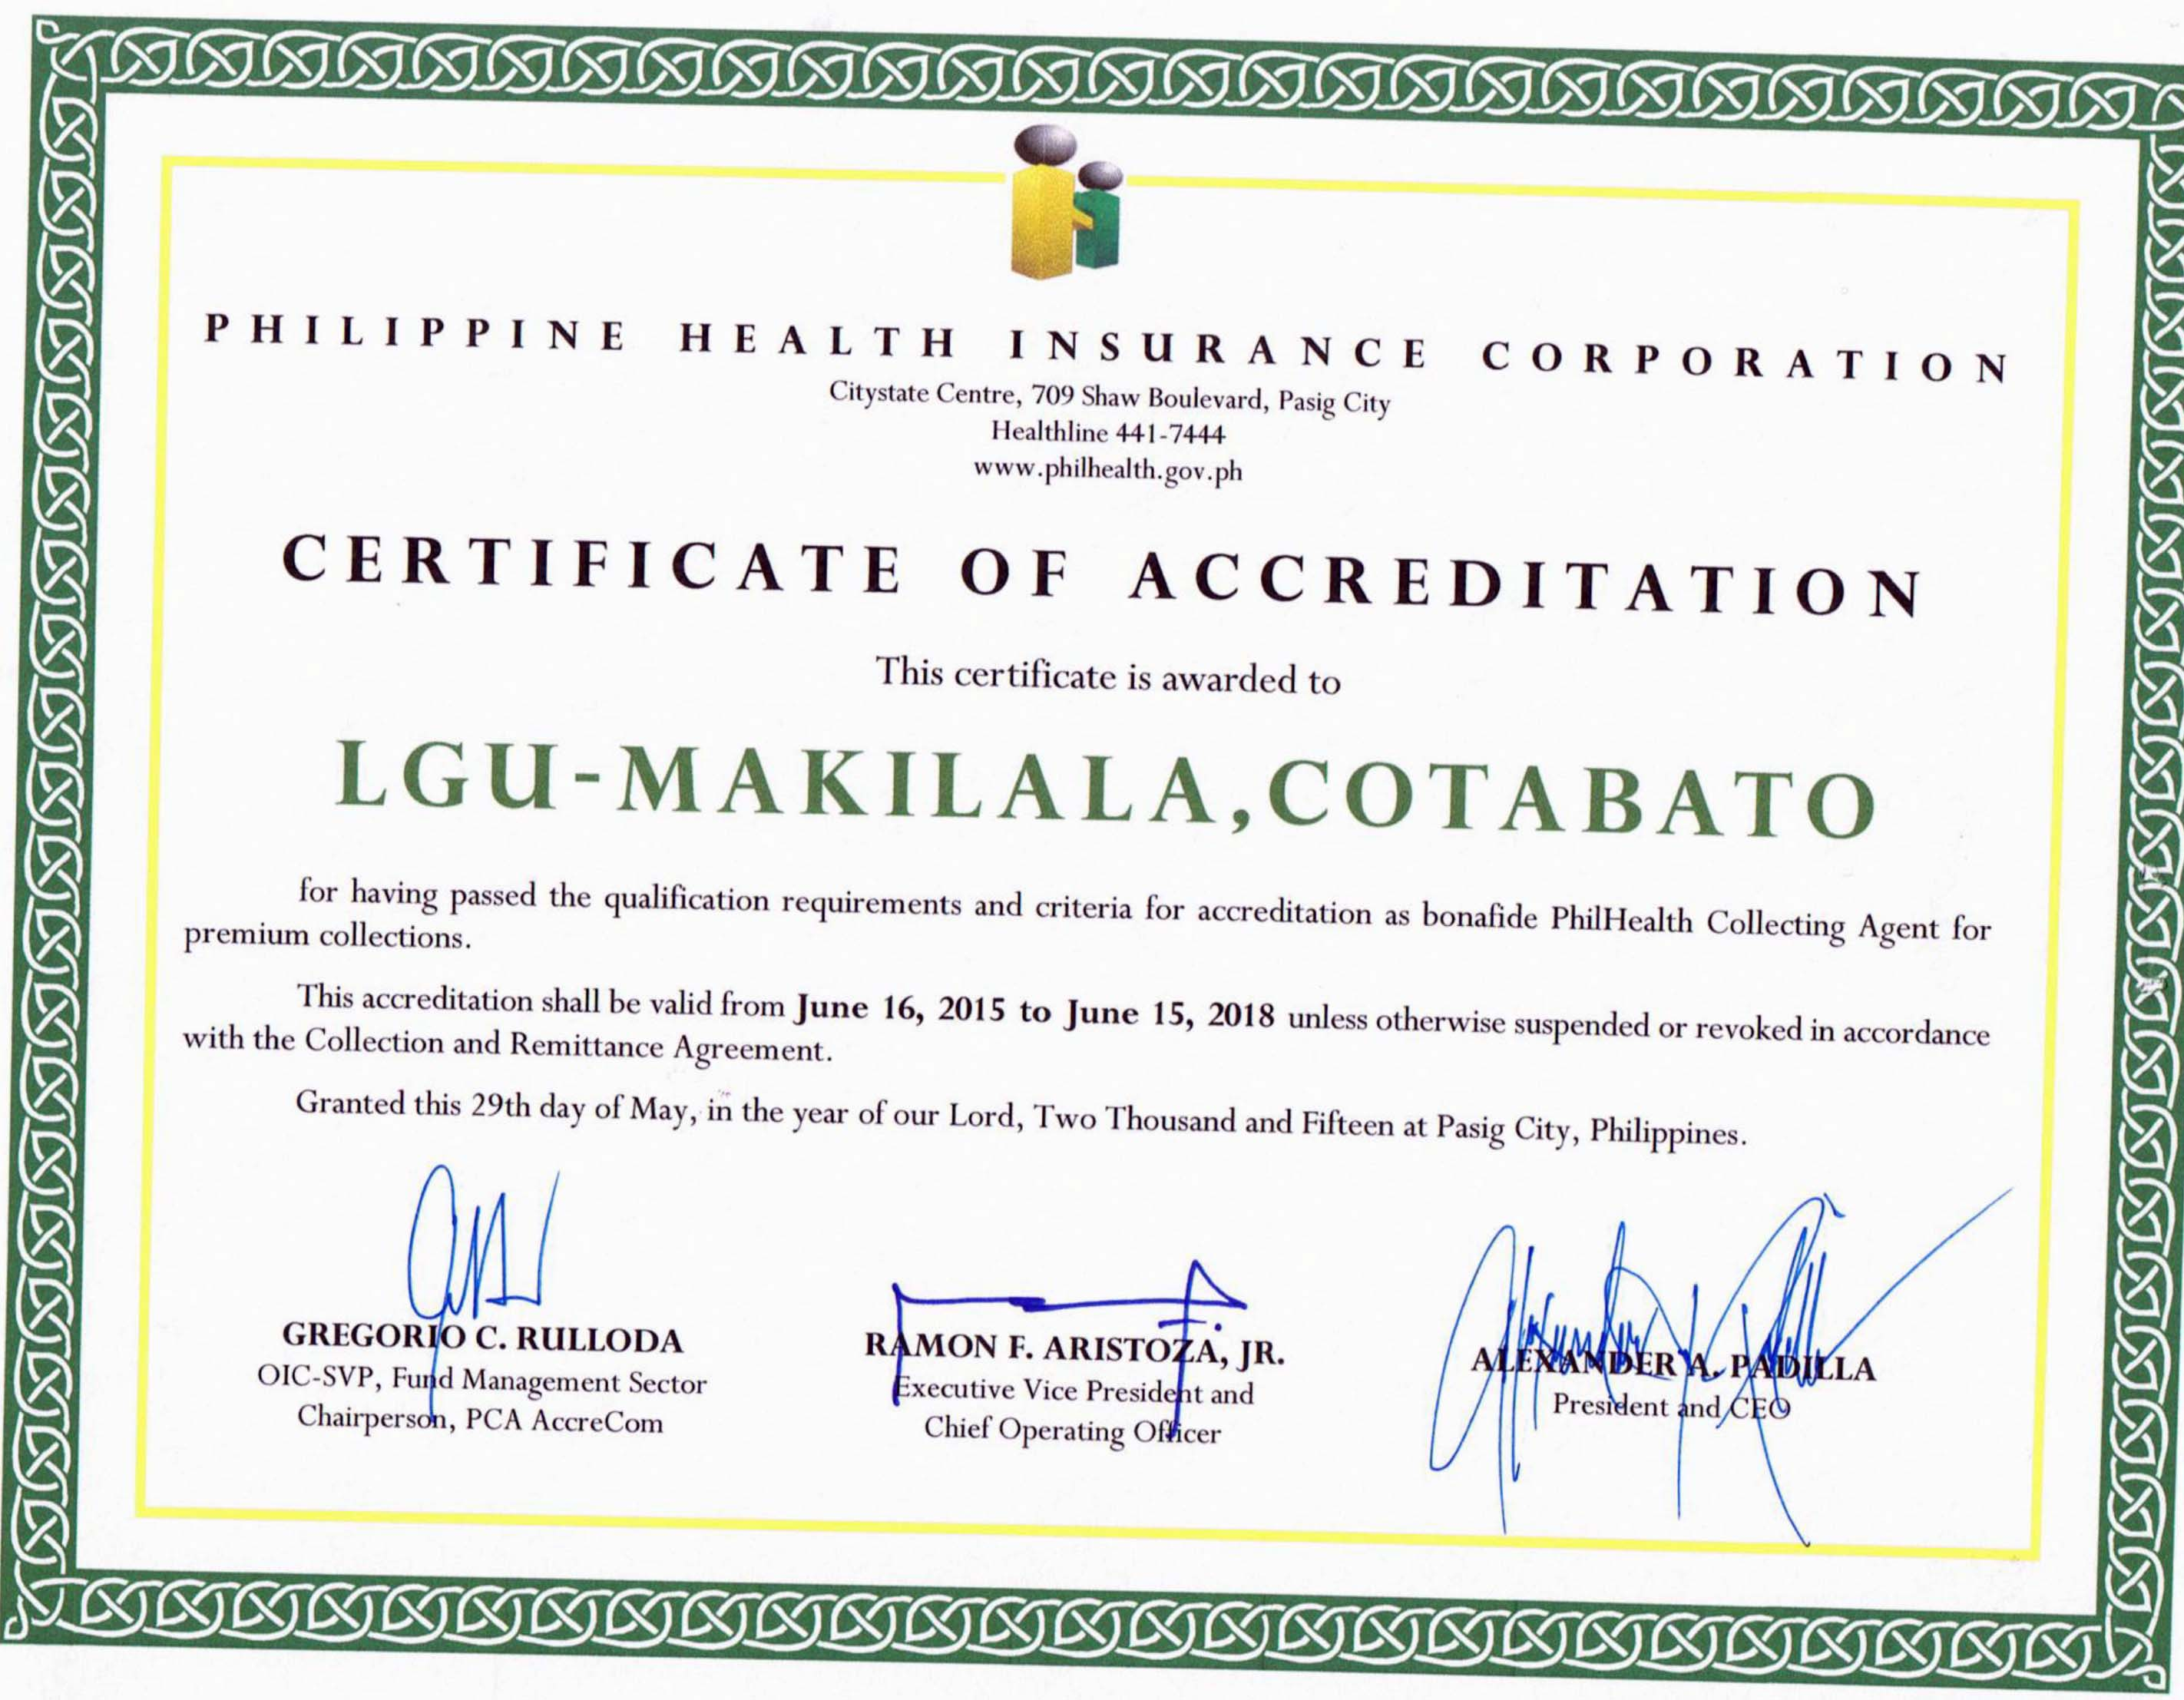 Philhealth awards lgu makilala certificate of accreditation as corporation philhealth awarded the local government unit lgu of makilala with the certificate of accreditation as a bonafide philhealth collecting xflitez Gallery